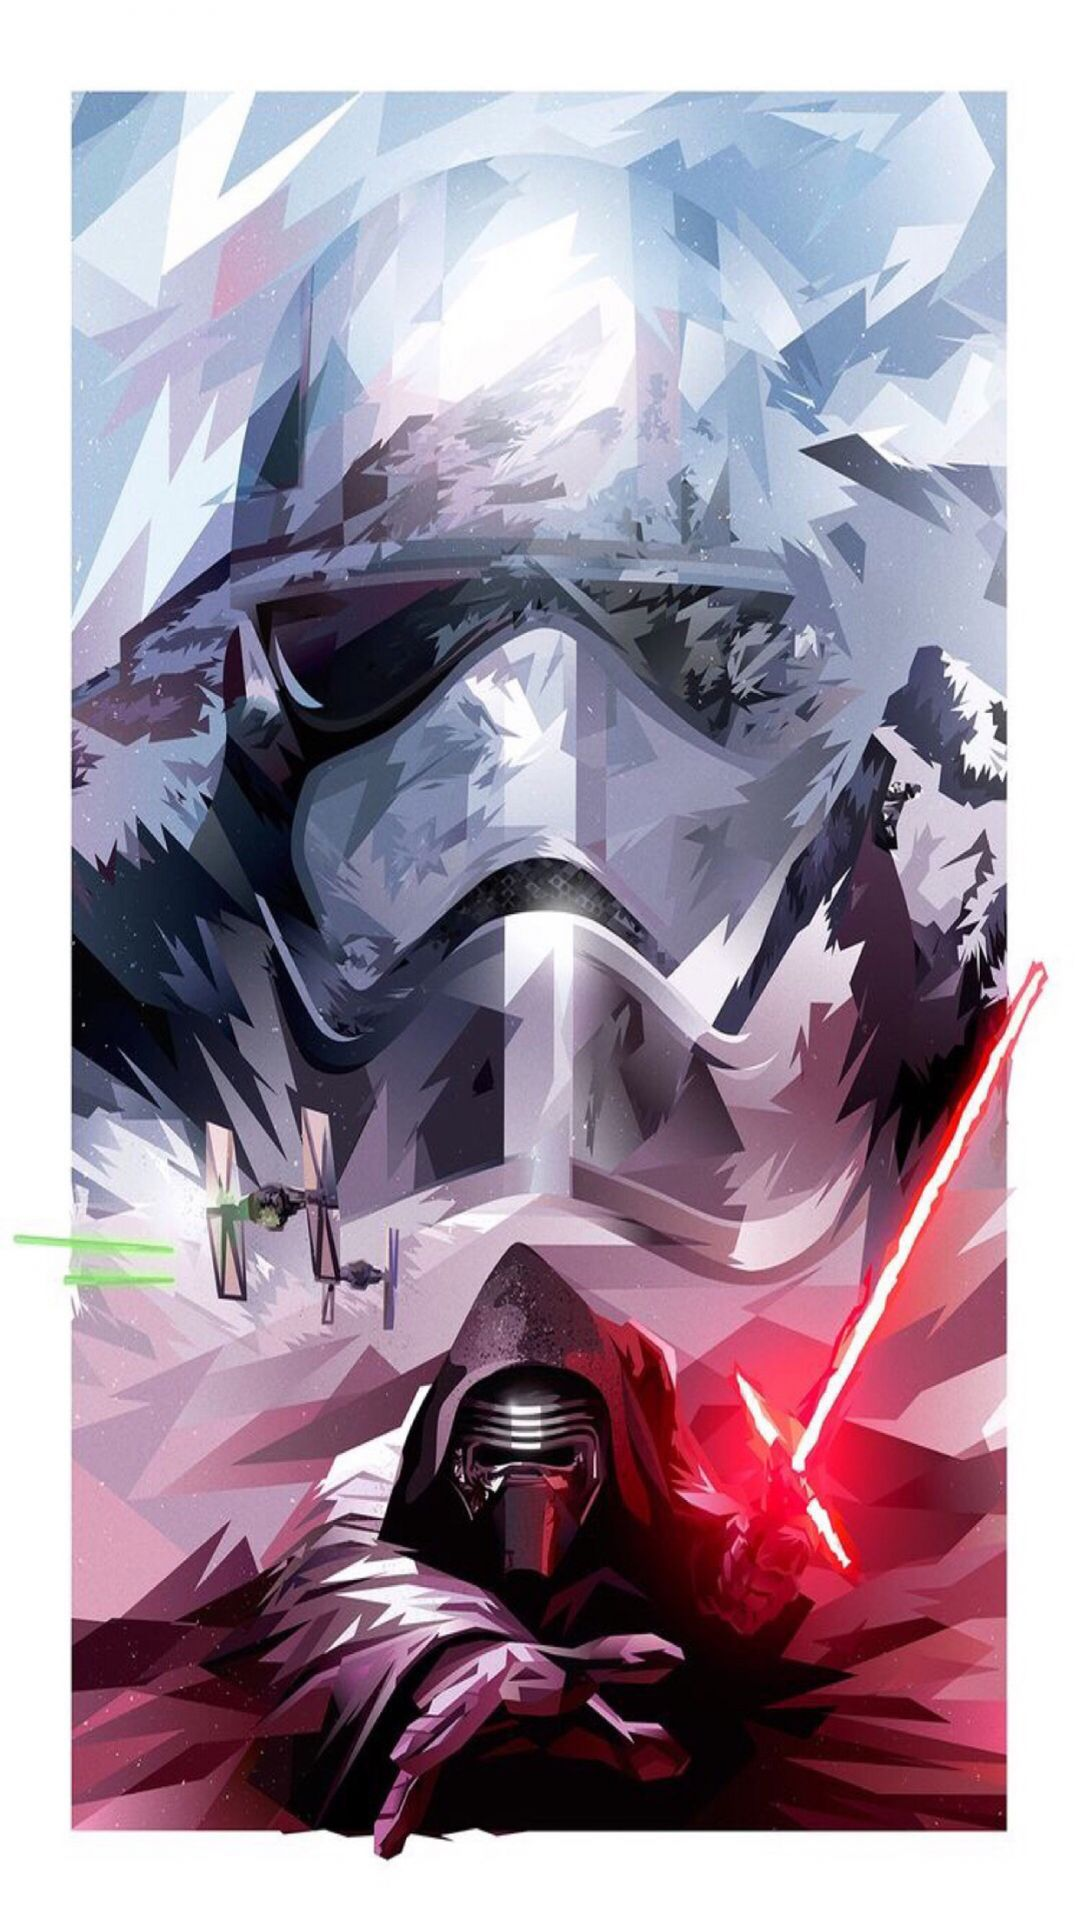 65 Star Wars Live Wallpaper Android Android Iphone Desktop Hd Backgrounds Wallpapers 1080p 4k 1242x2208 2020